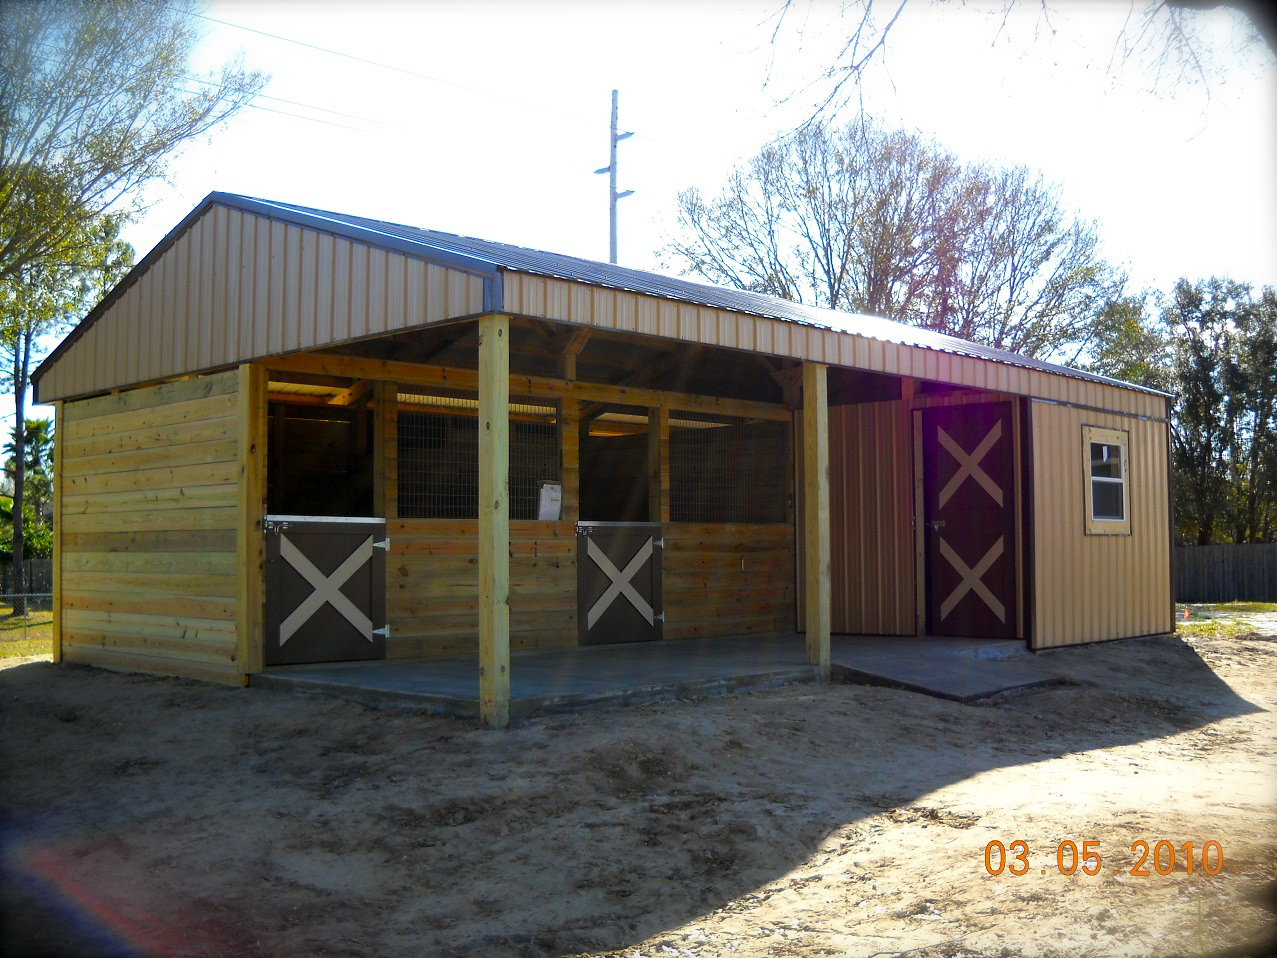 Horse Barns With Apartments On Top on carriage house stalls